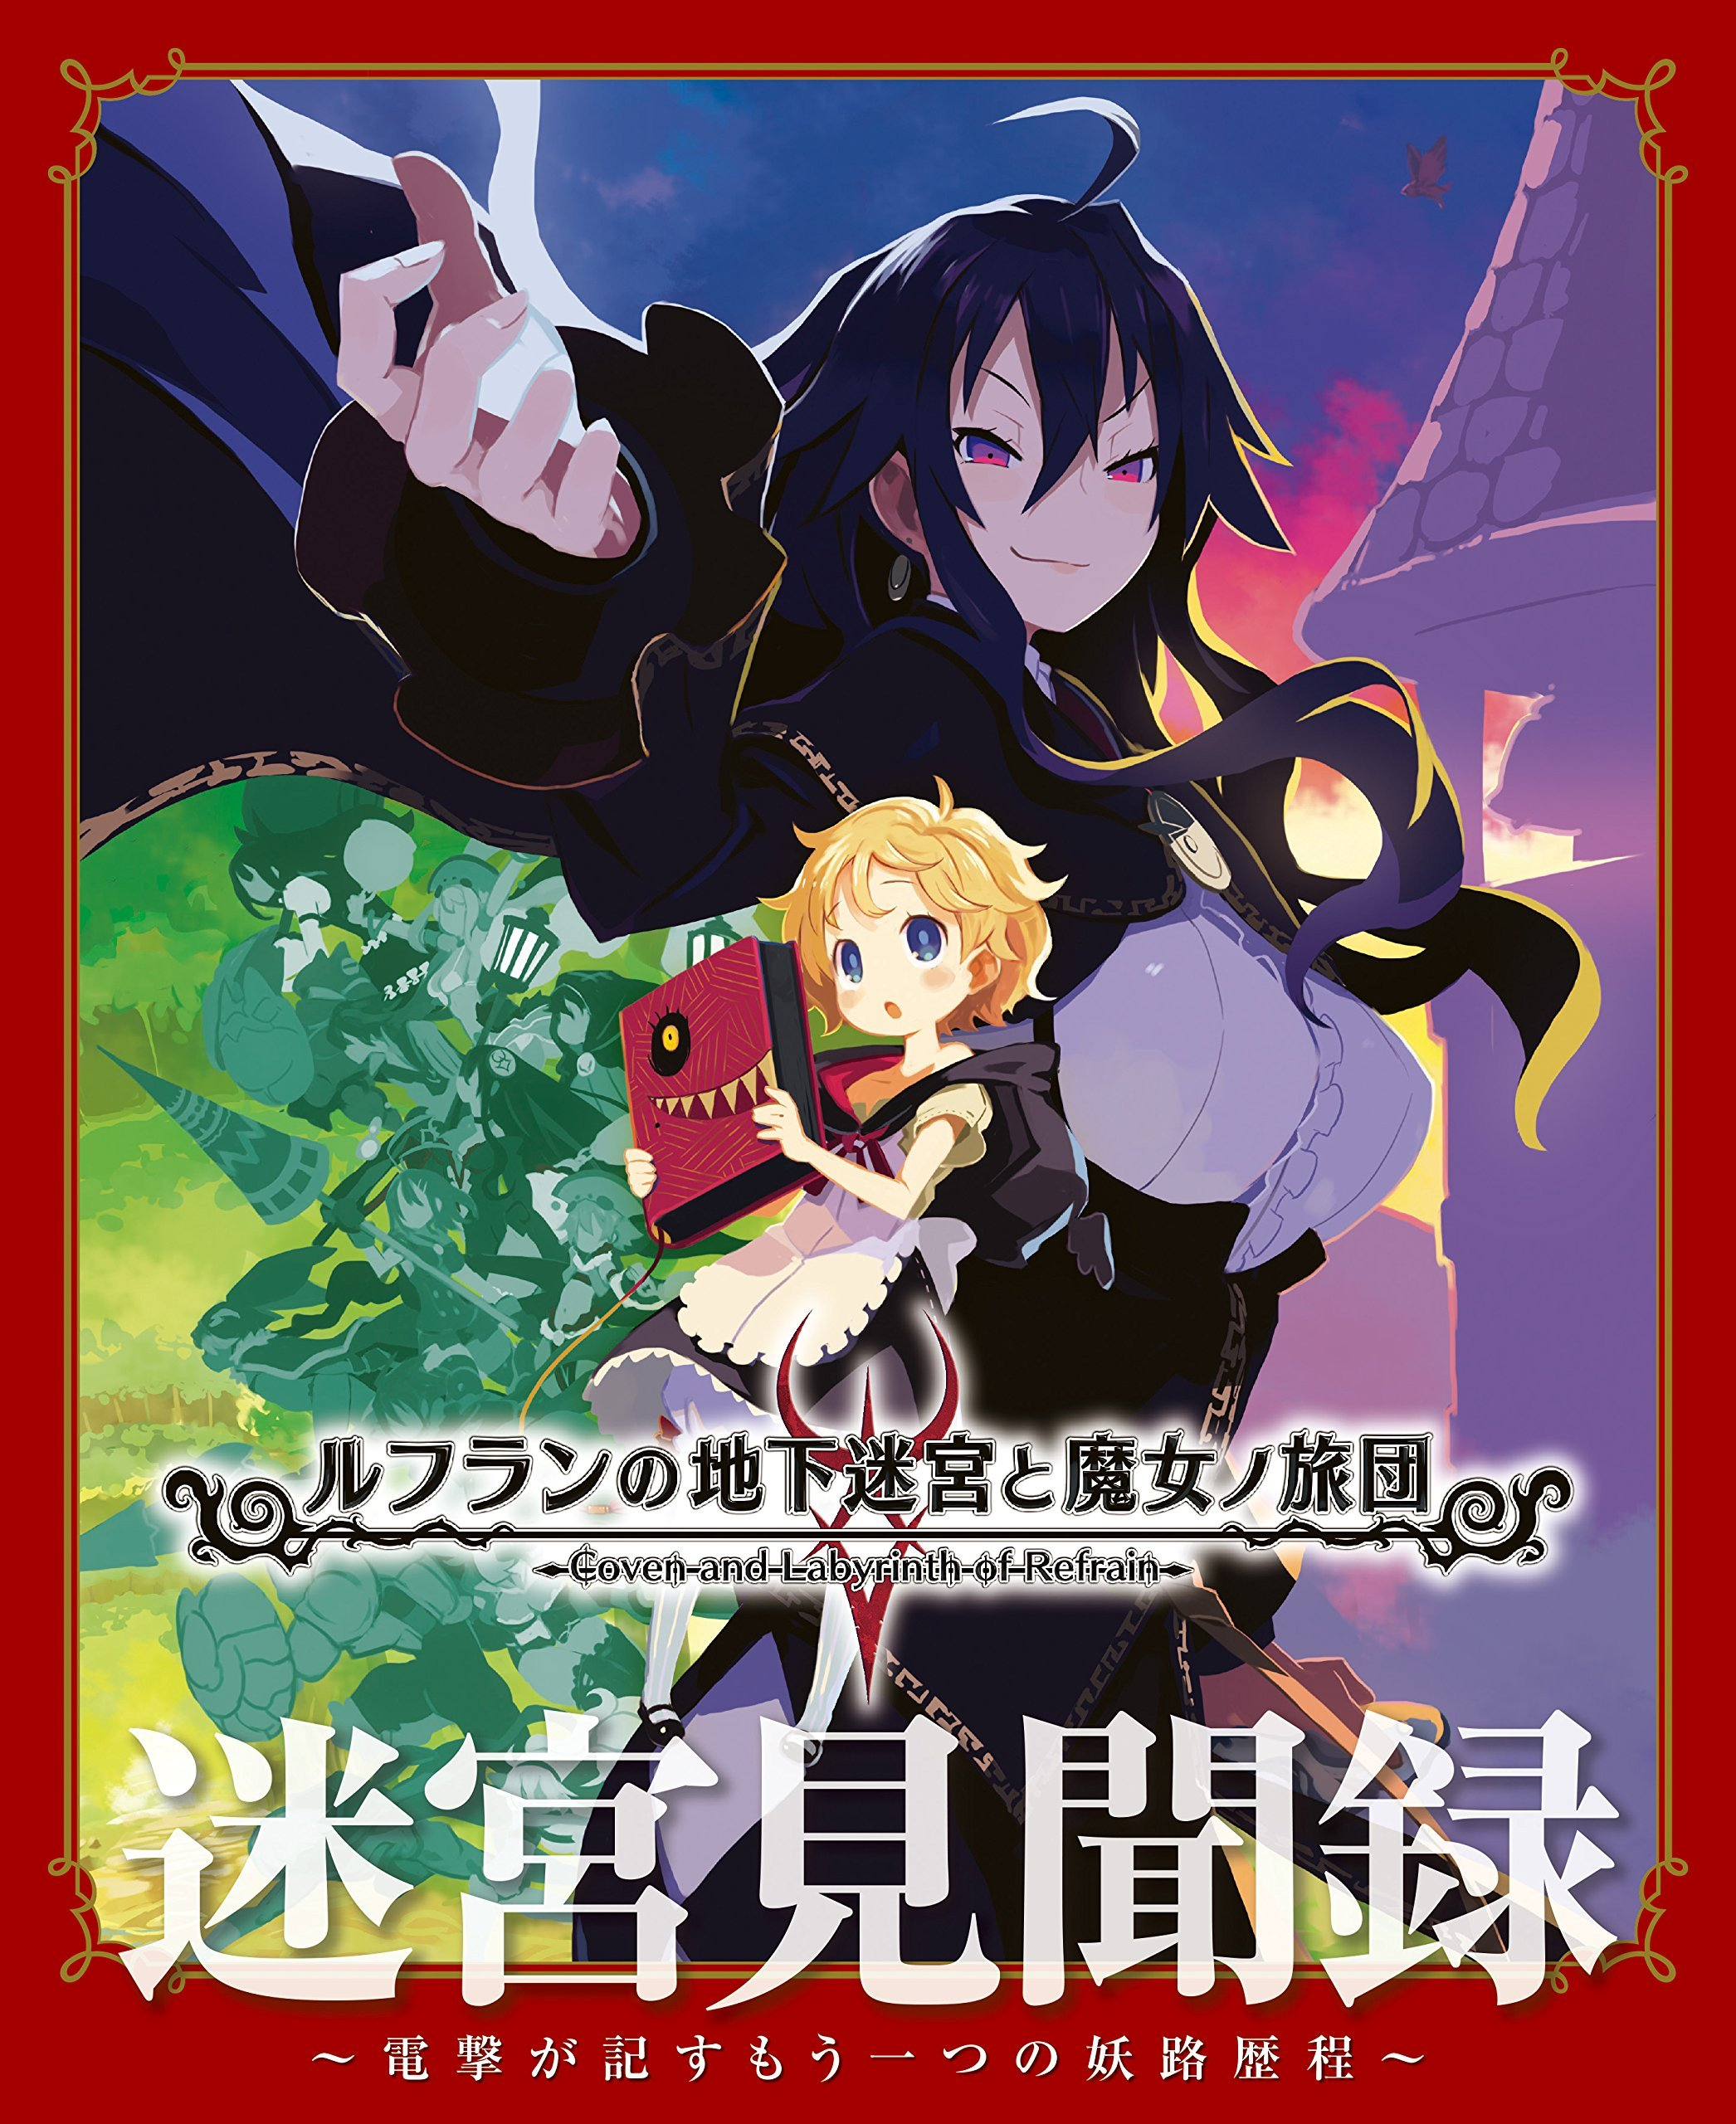 Labyrinth of Refrain: Coven of Dusk - Labyrinth Memoirs (Vol.617 supplement) (July 14, 2016)